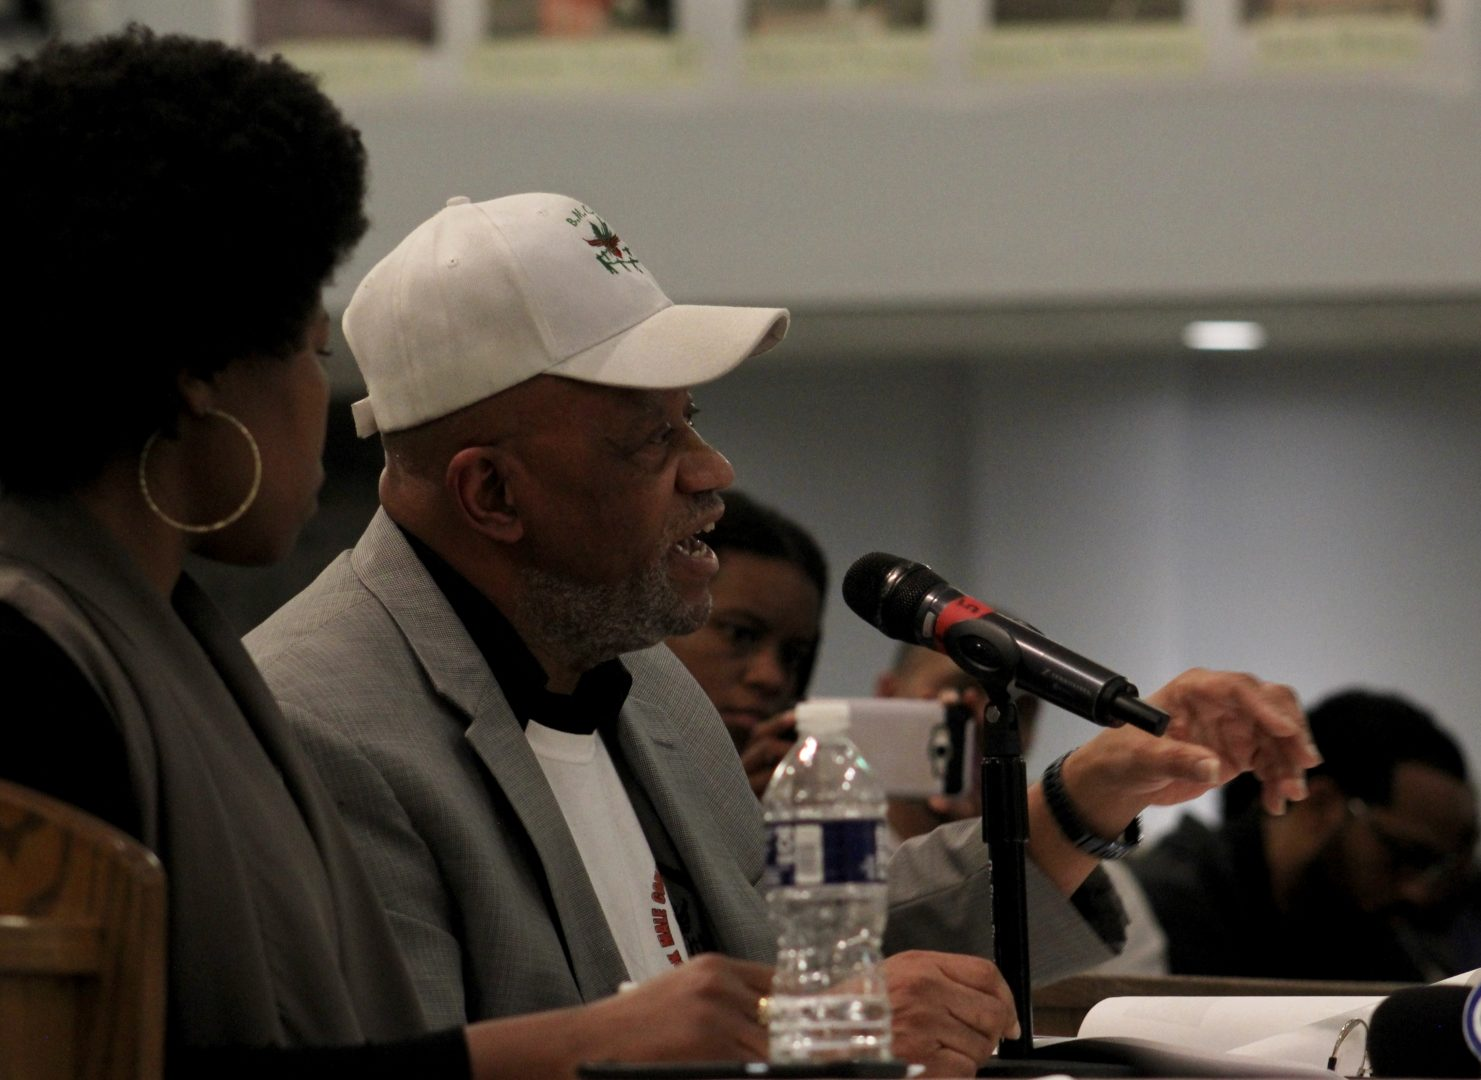 Stanley Crawford sits at the table near the front of the church and speaks into a microphone. He is wearing a hat with the logo of the Black Male Community Council.